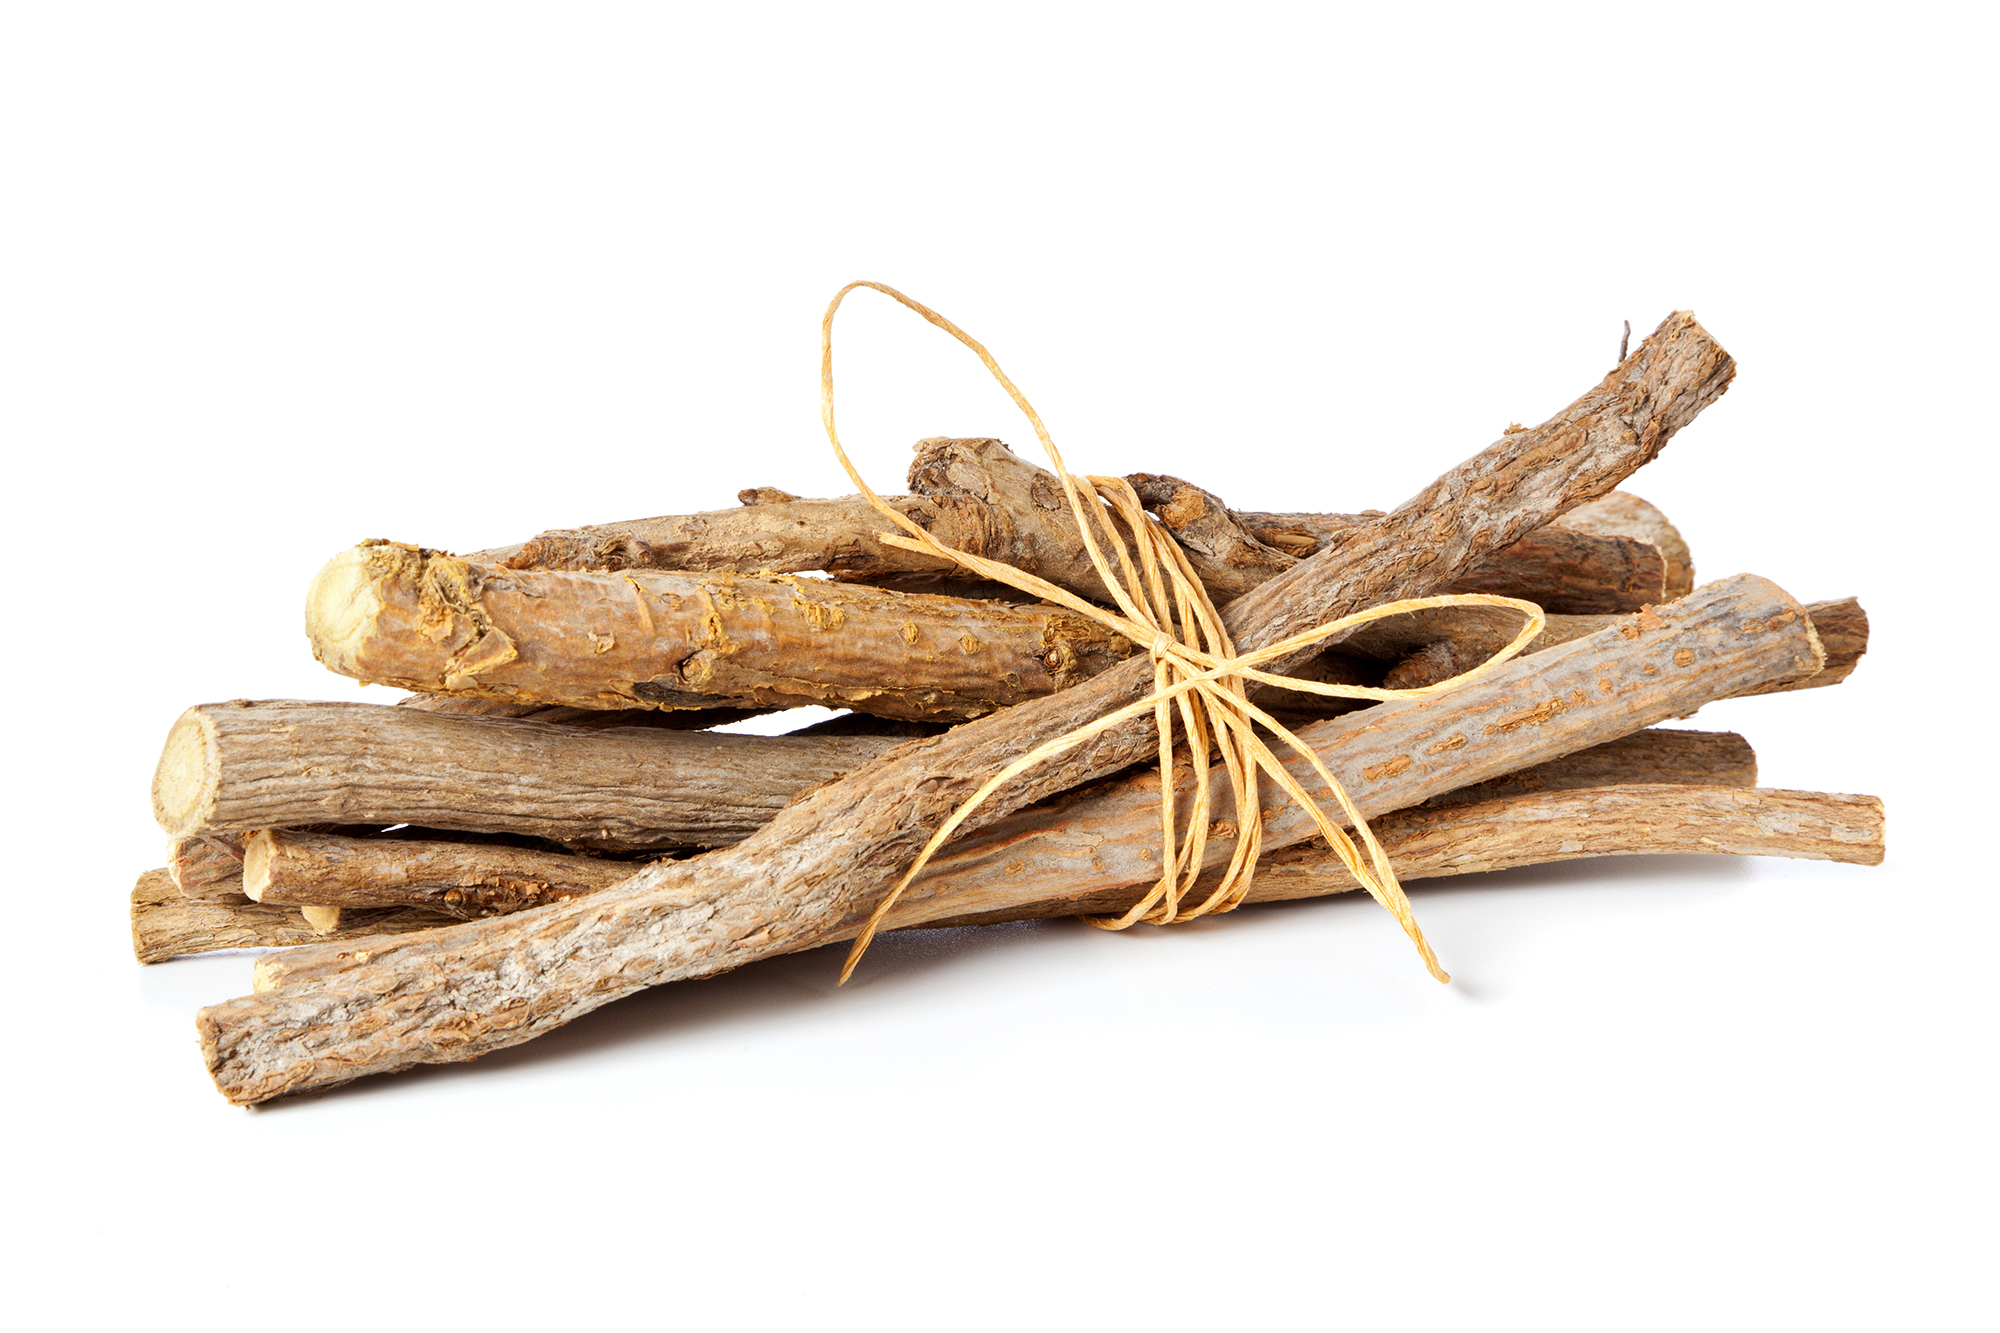 Glycyrrhiza glabra - bundled liquorice roots